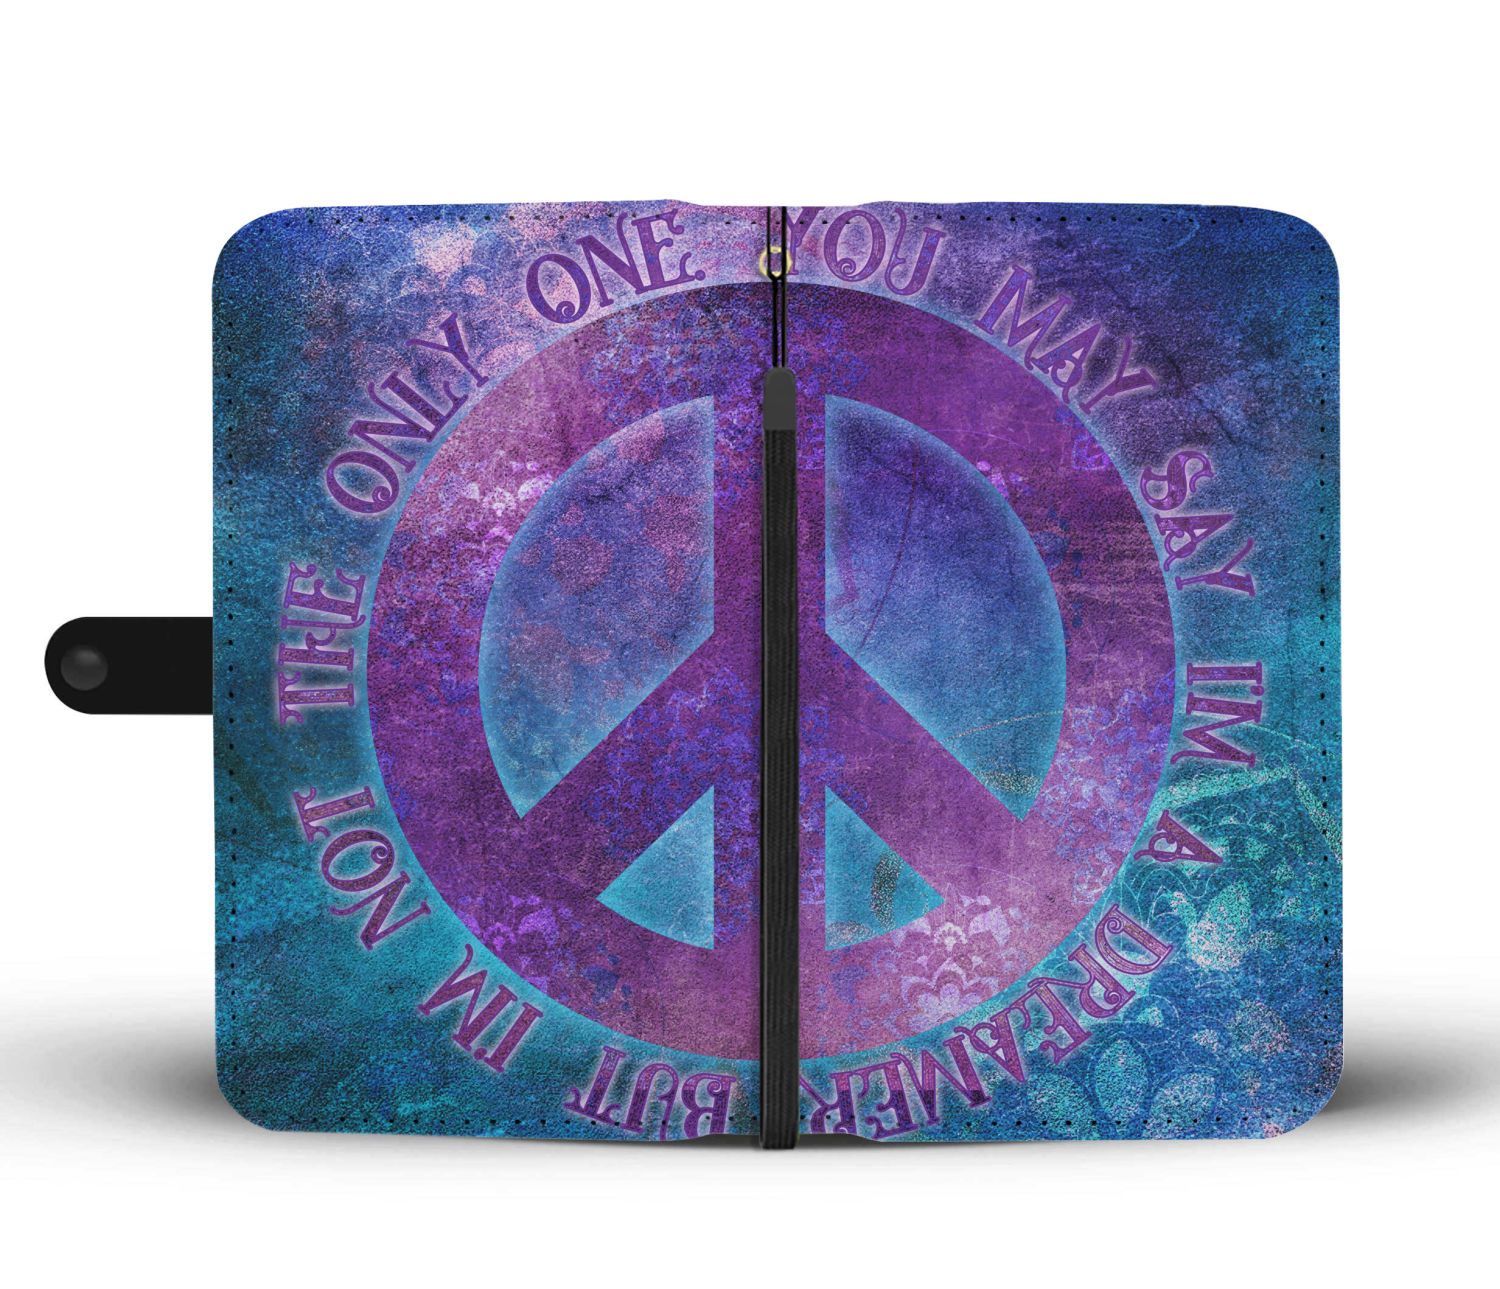 Imagine Peace Wallet Phone Case